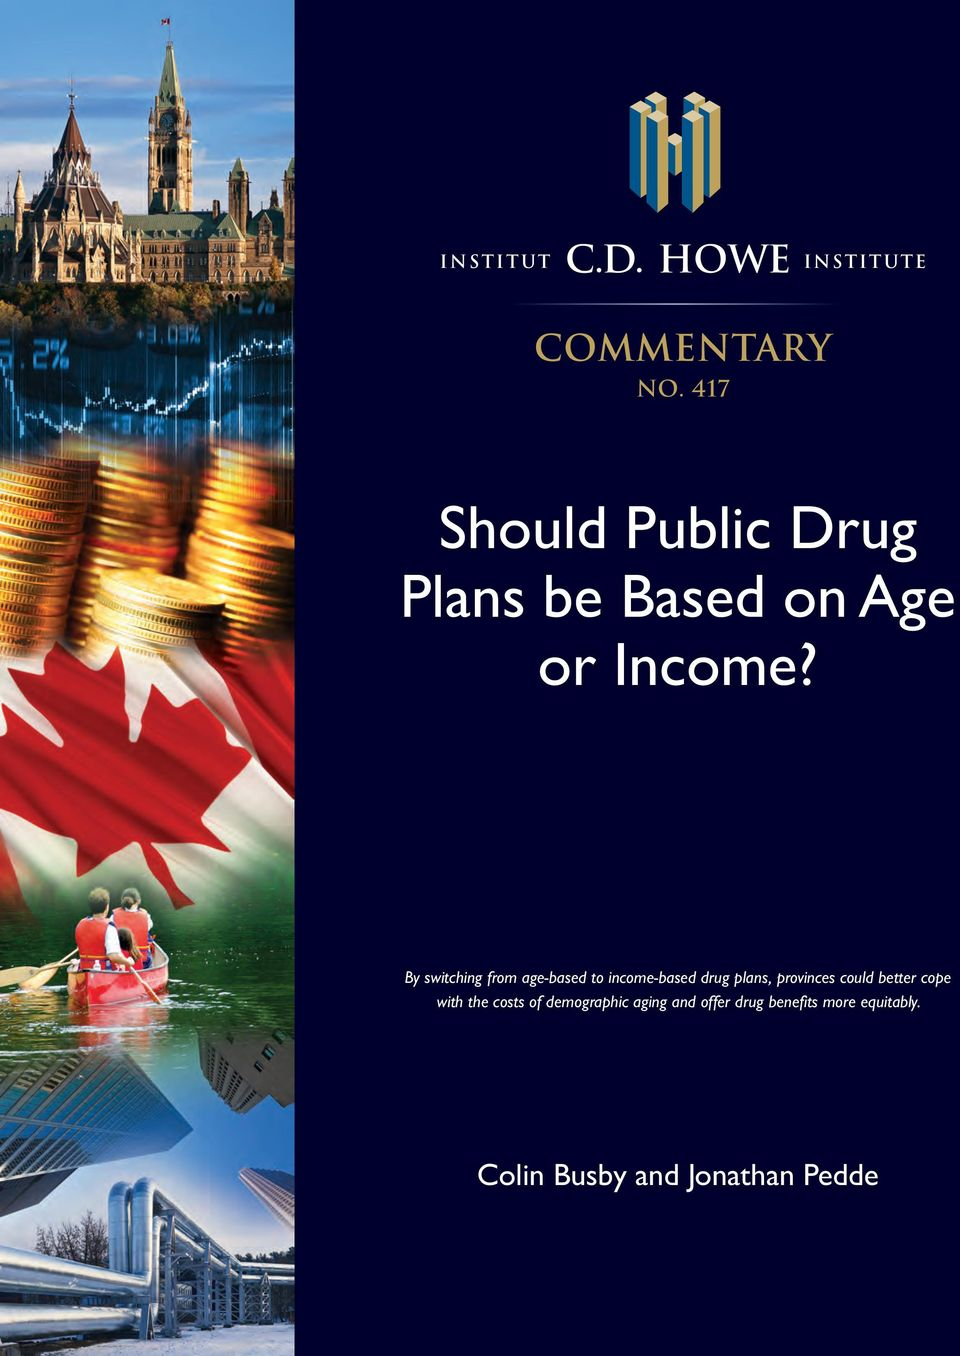 By switching from age-based to income-based drug plans, provinces could